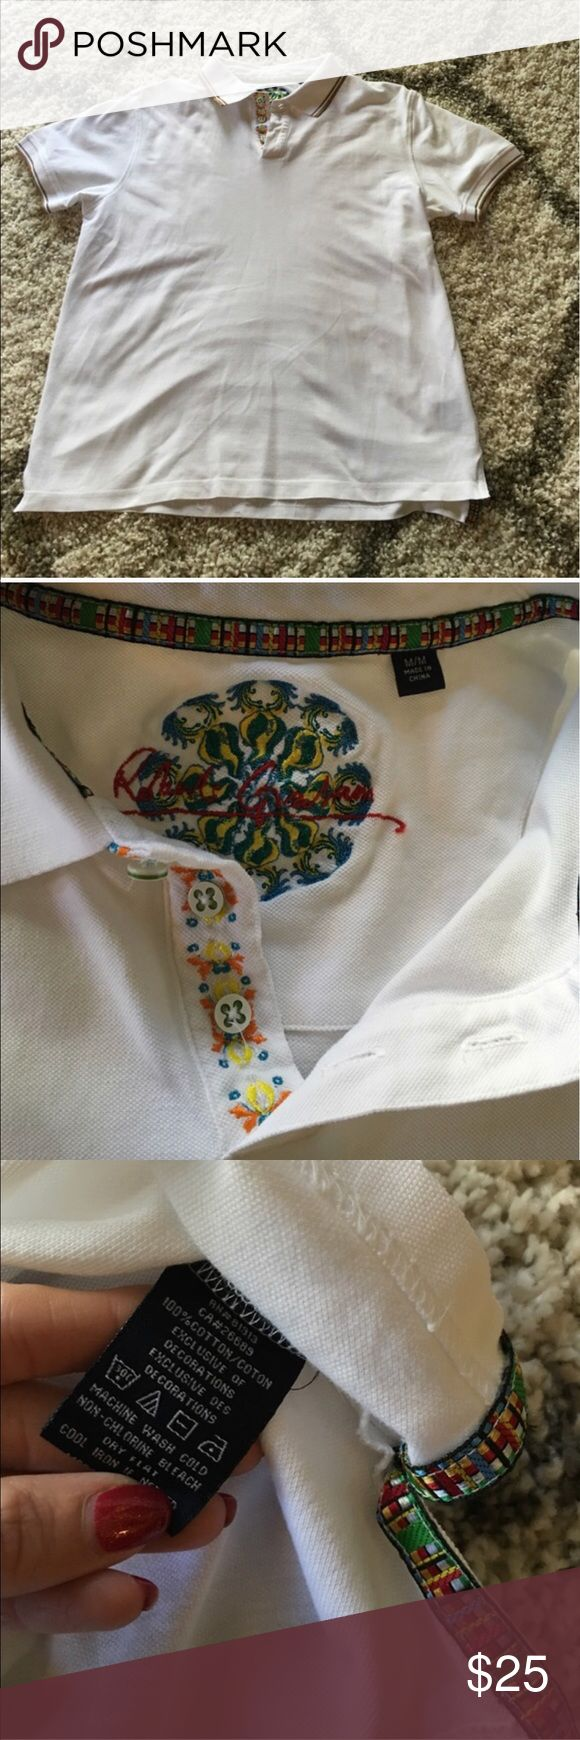 Robert Graham white polo shirt size medium Looks new, in mint condition size is medium color is white Robert Graham Shirts Polos